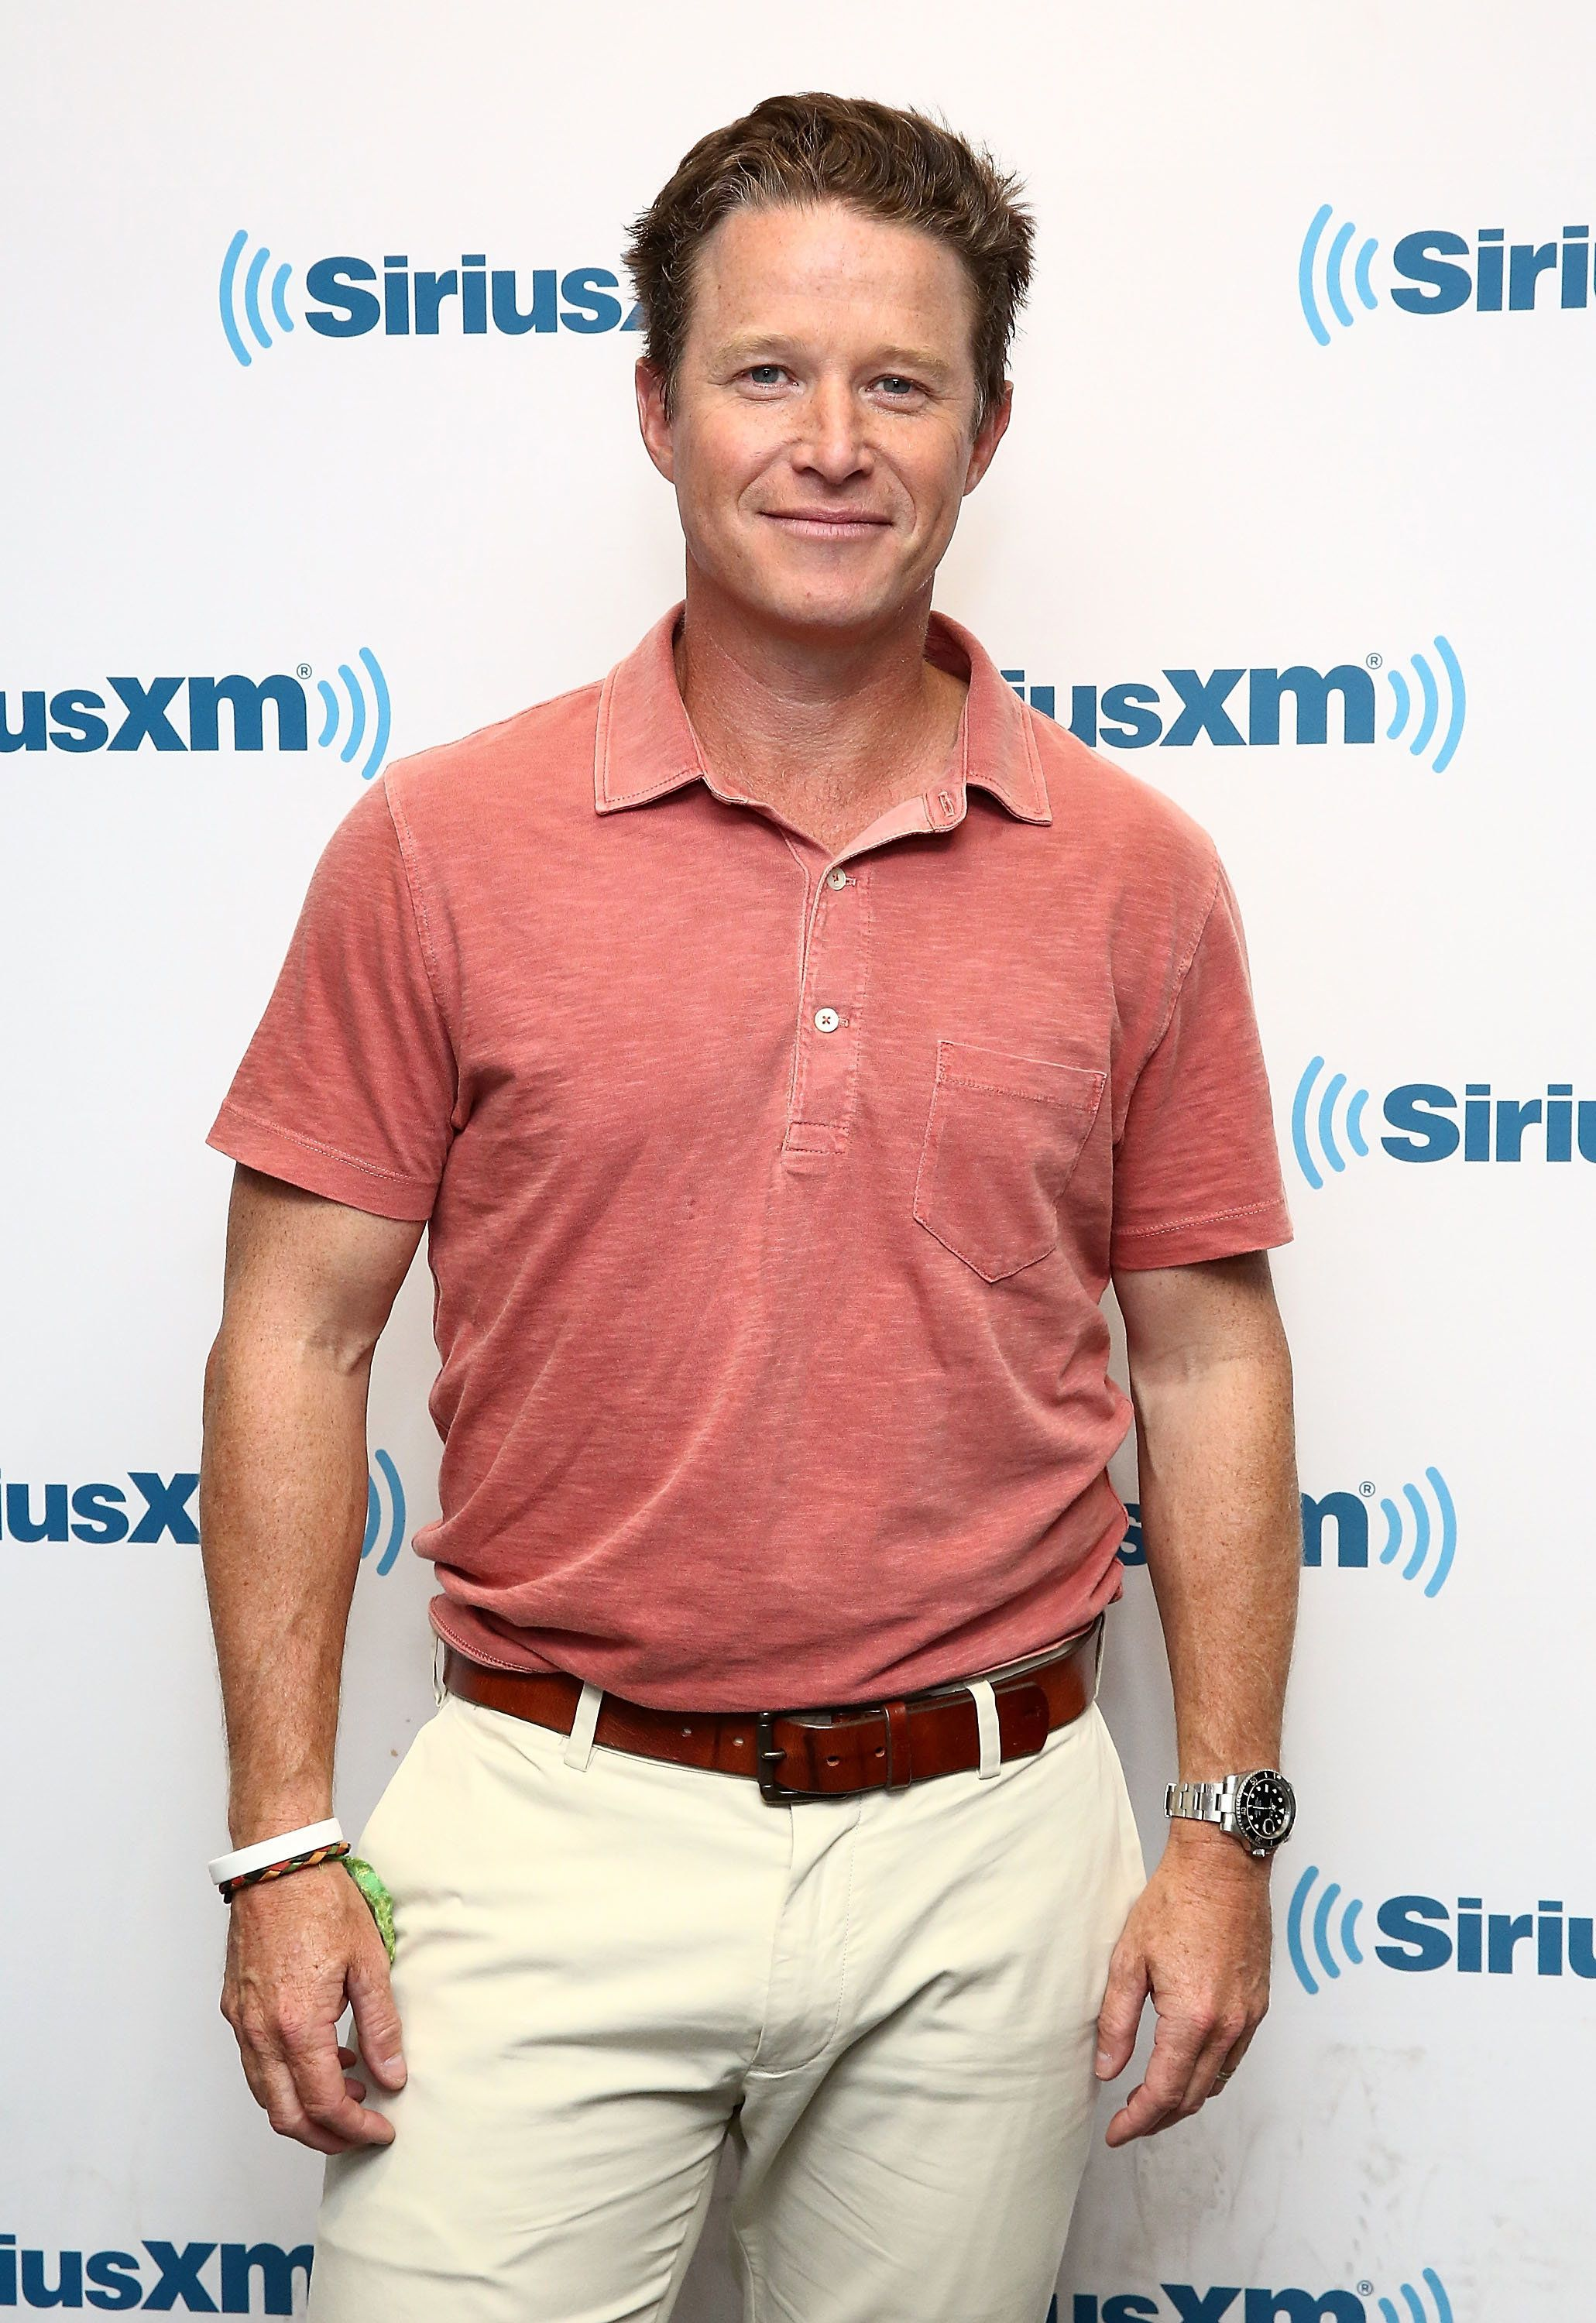 NEW YORK, NY - AUGUST 22:  (EXCLUSIVE COVERAGE)  TV personality and NBC's 'Today' show co-anchor, Billy Bush visits the SiriusXM Studios on August 22, 2016 in New York City.  (Photo by Astrid Stawiarz/Getty Images)